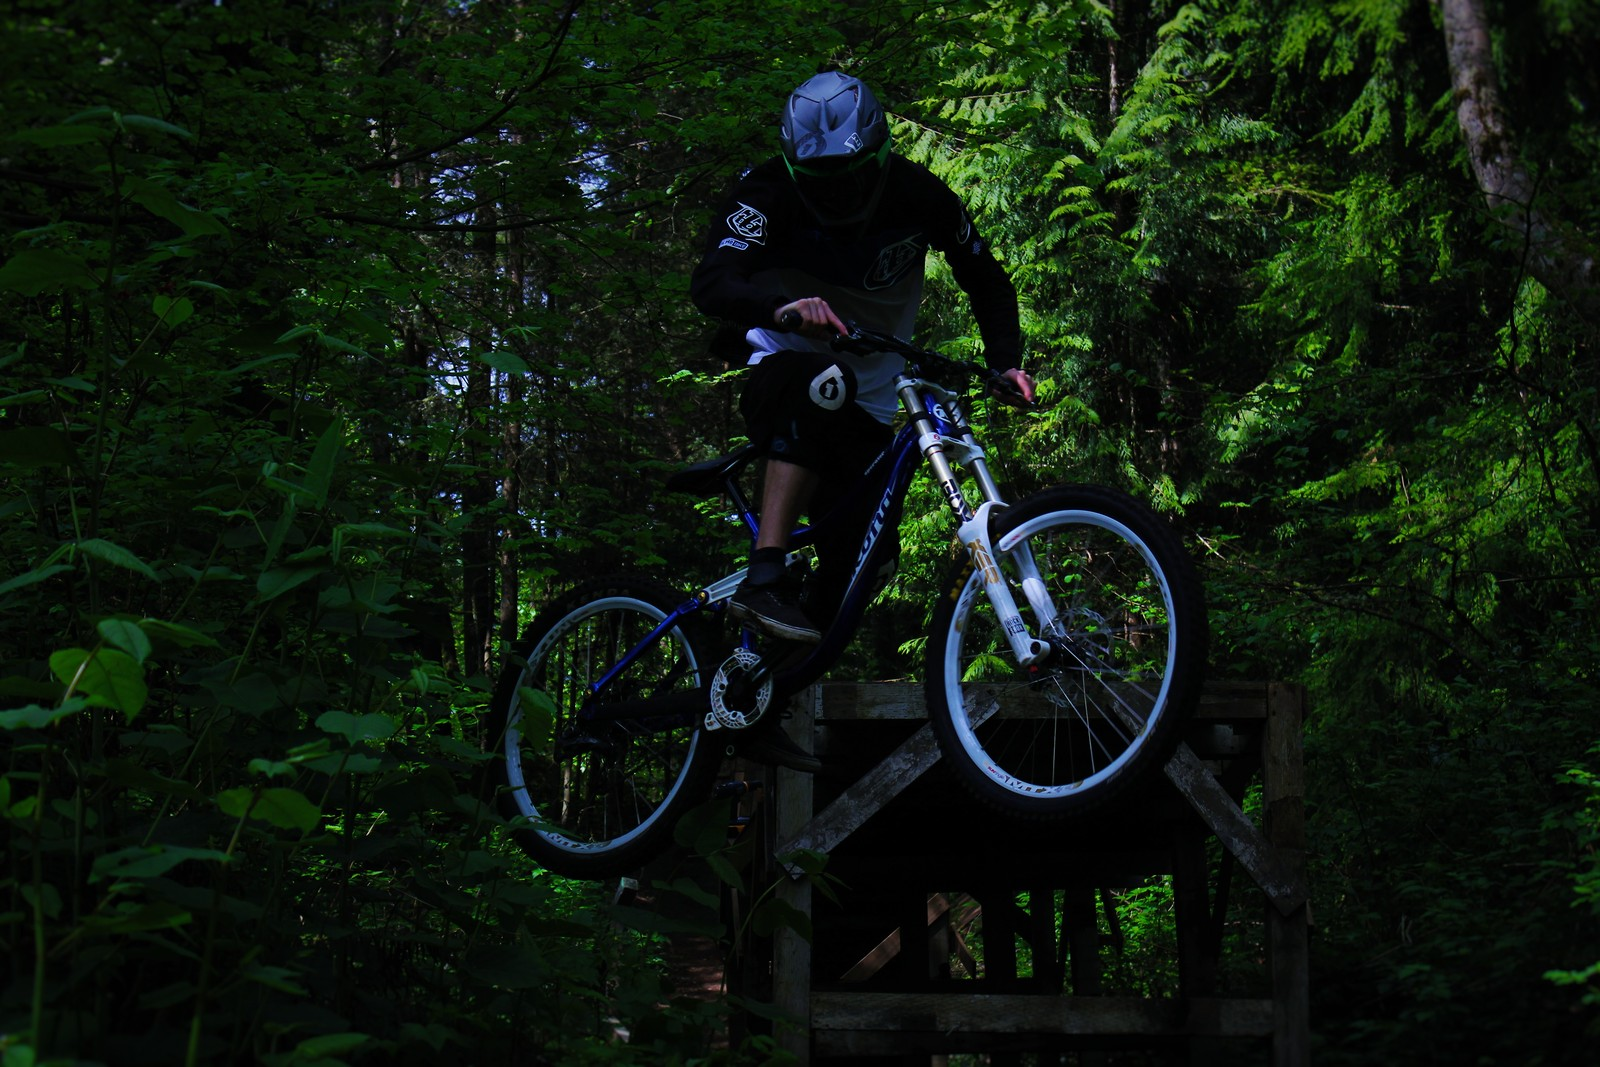 Northwest Riding - trebeol - Mountain Biking Pictures - Vital MTB